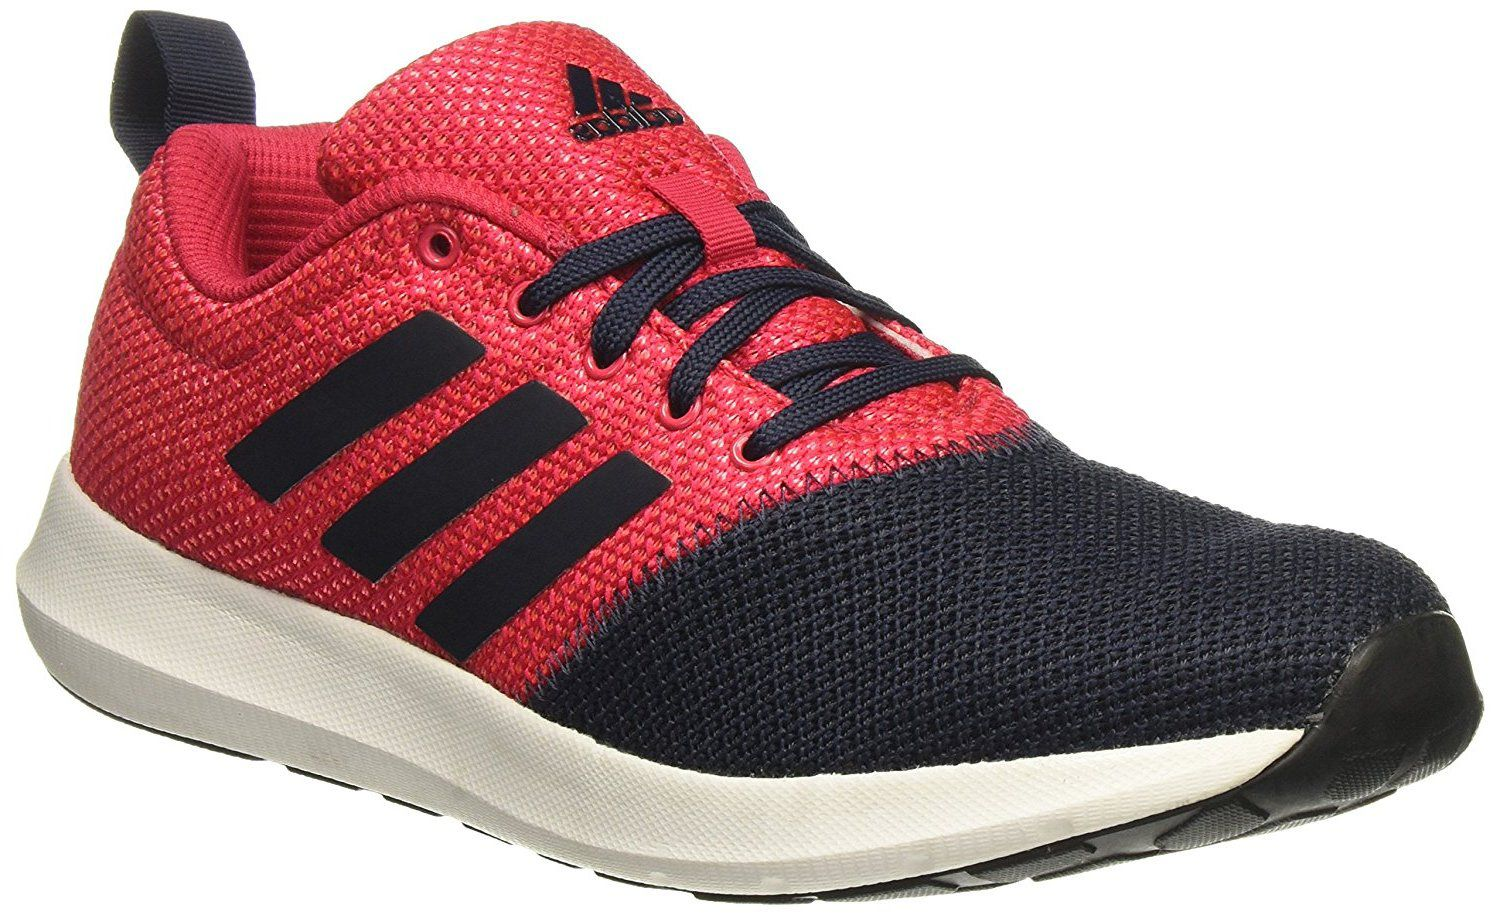 online store d77fd 66e1d Adidas Red Running Shoes Price in India- Buy Adidas Red Running Shoes  Online at Snapdeal